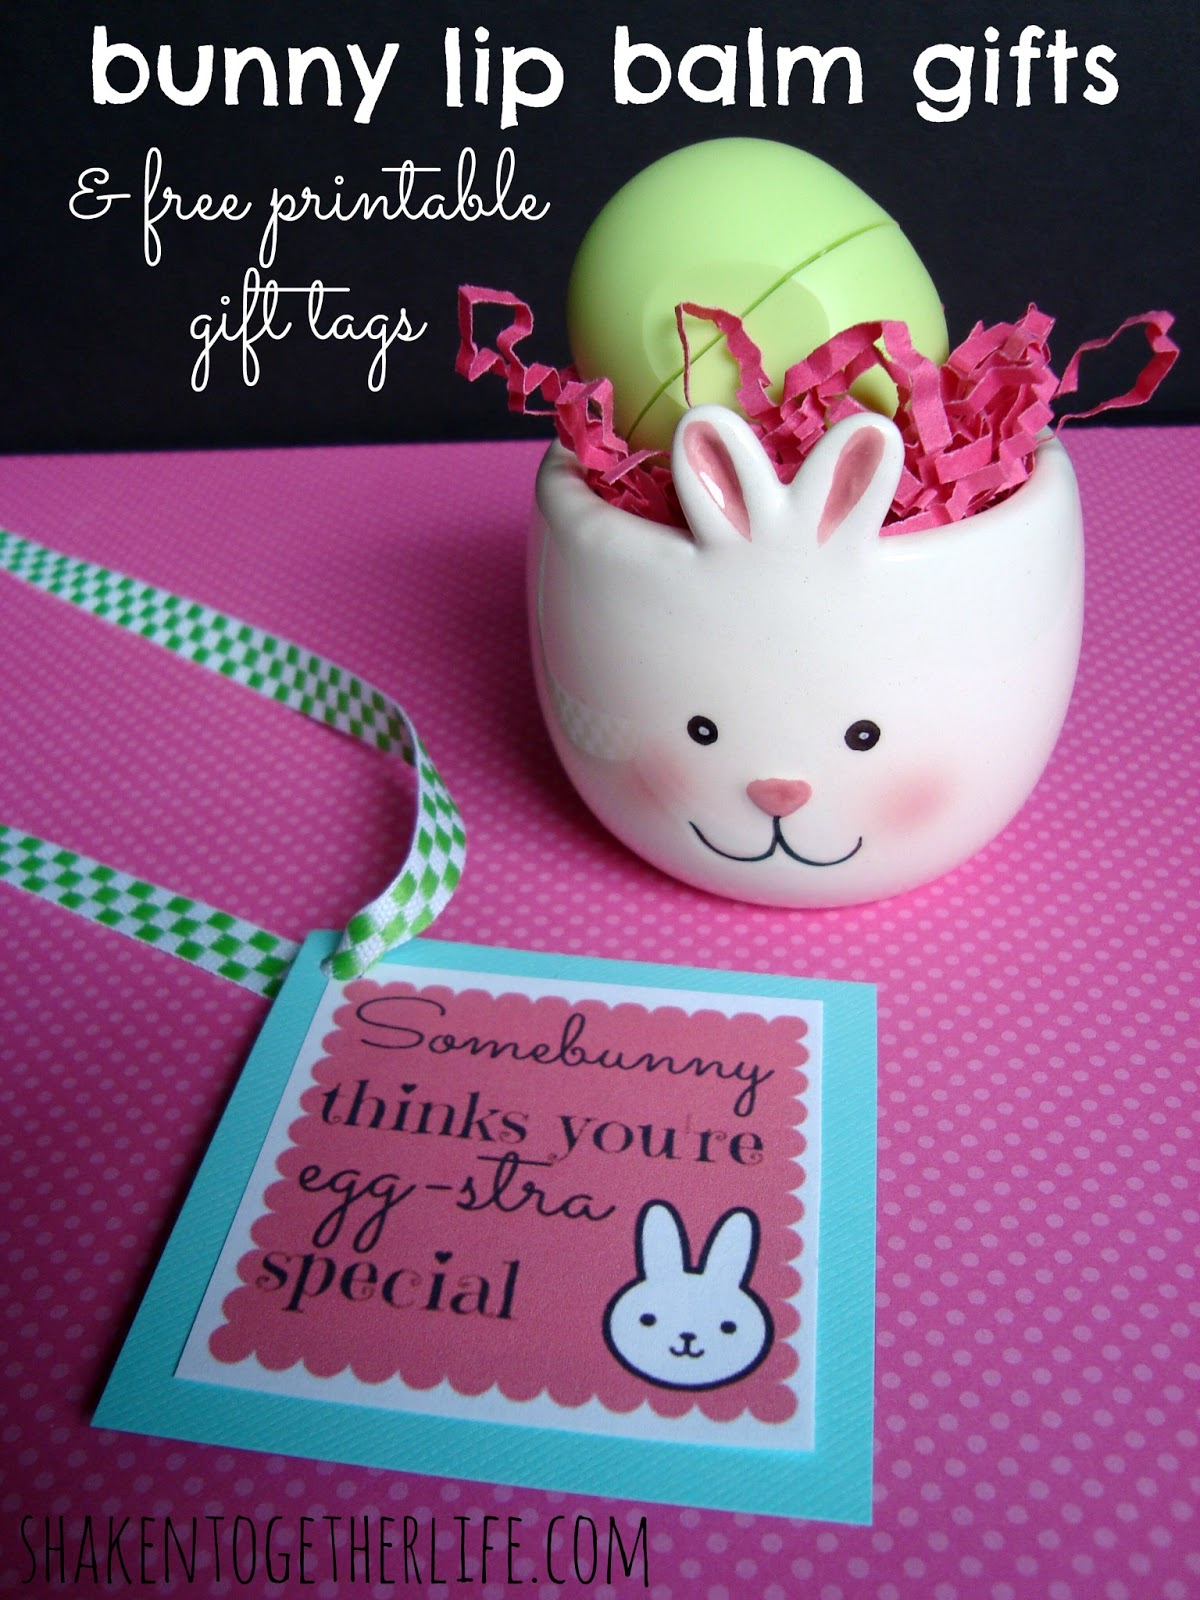 Bunny lip balm gifts for easter printable tags if you need a quick inexpensive easter or spring gift for teachers your baby sitter co workers teens and tweens this one could be it negle Choice Image